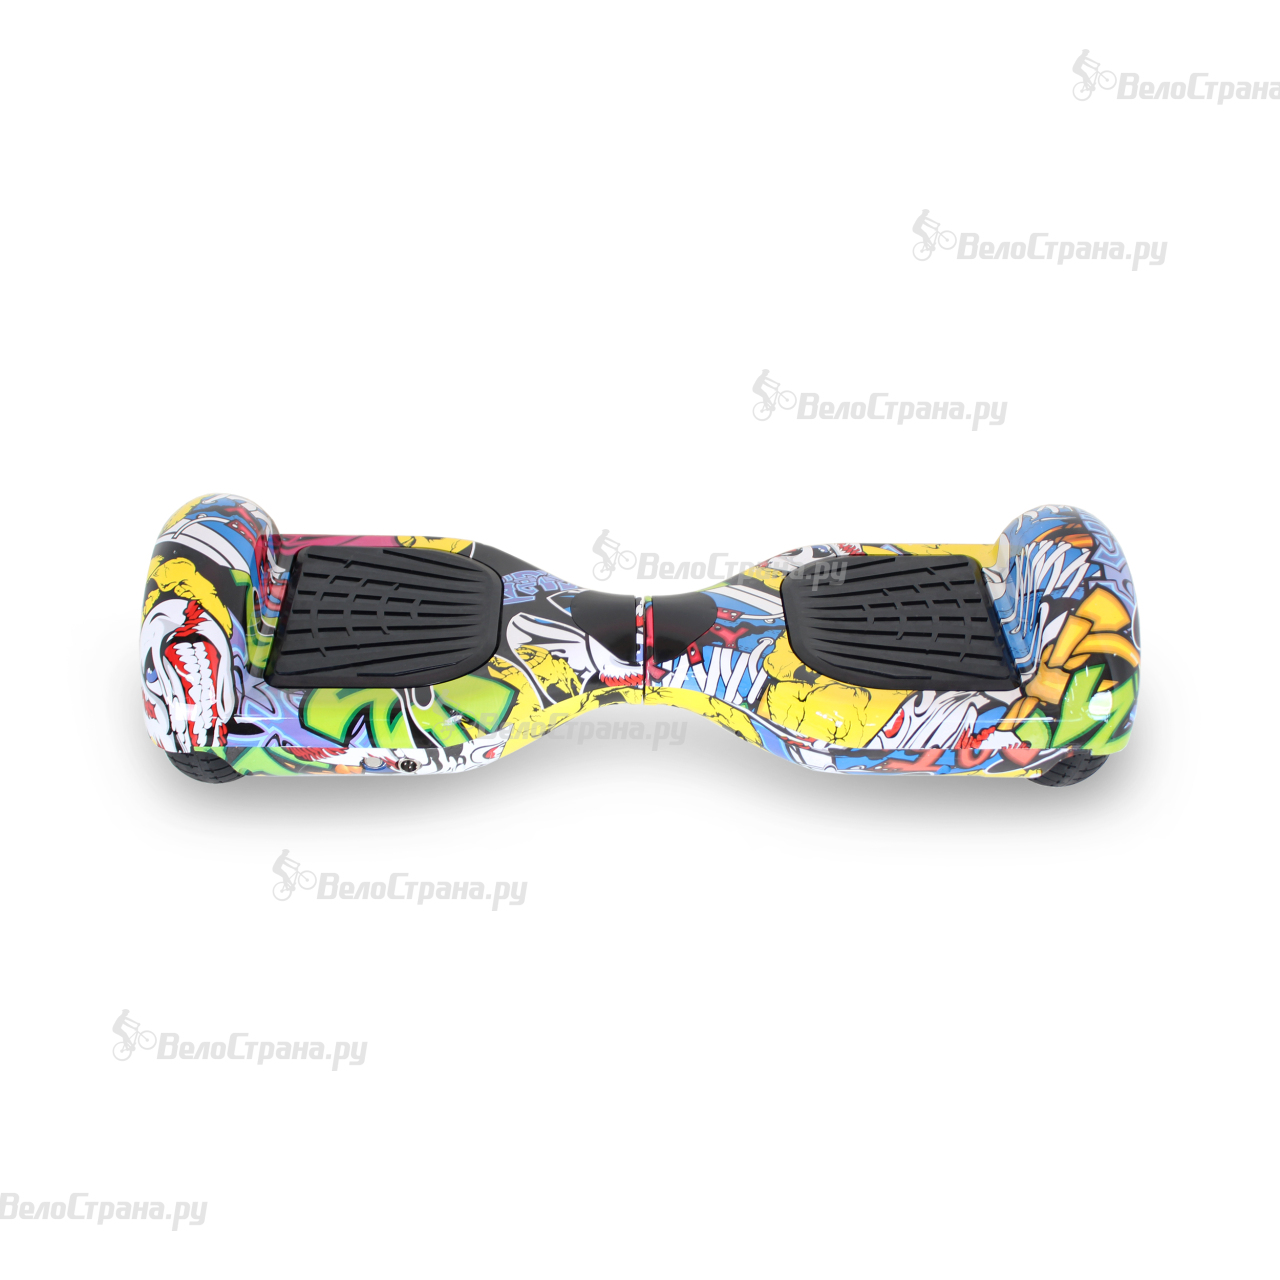 Hoverbot A-3 Light Yellow multicolor